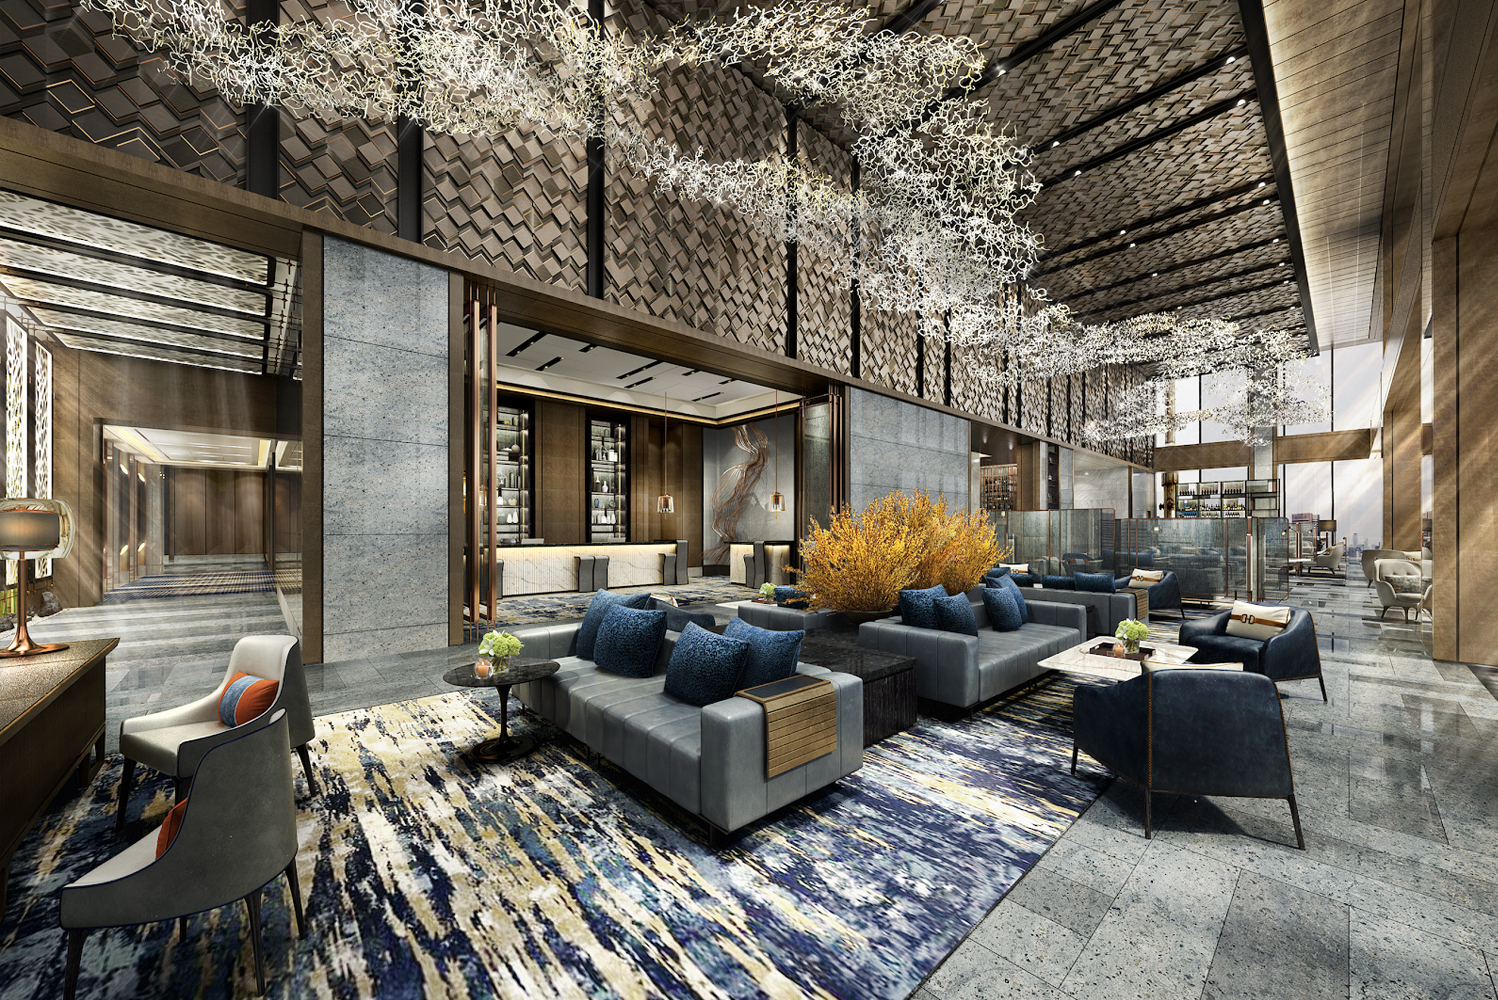 Marriott International will open the mesm Tokyo, Autograph Collection's second property in Japan in 2020.